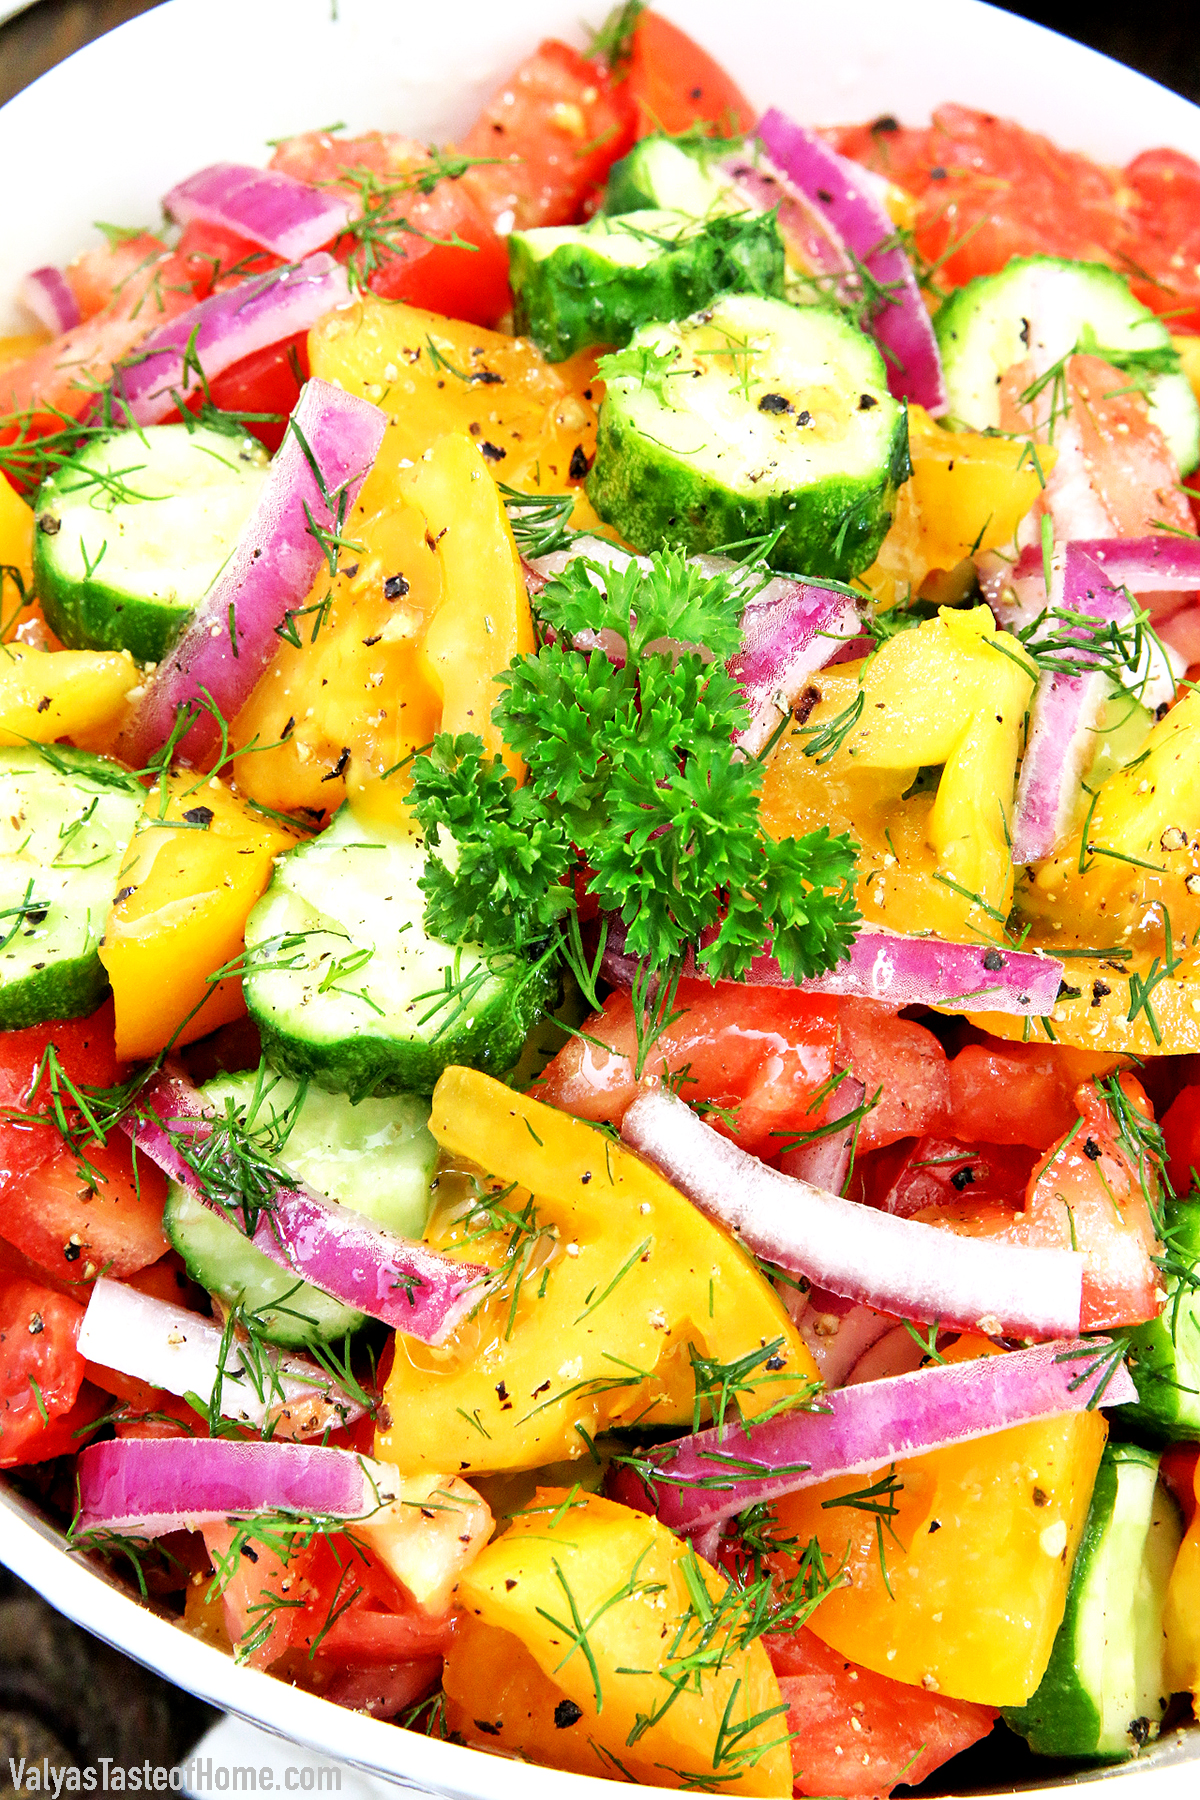 This Simple and Fresh Cucumber Tomato Garden Salad is amazingly refreshing and scrumptious! It's usually not summer for us if we haven't enjoyed this salad made from fresh, organically homegrown, crispy garden veggies.